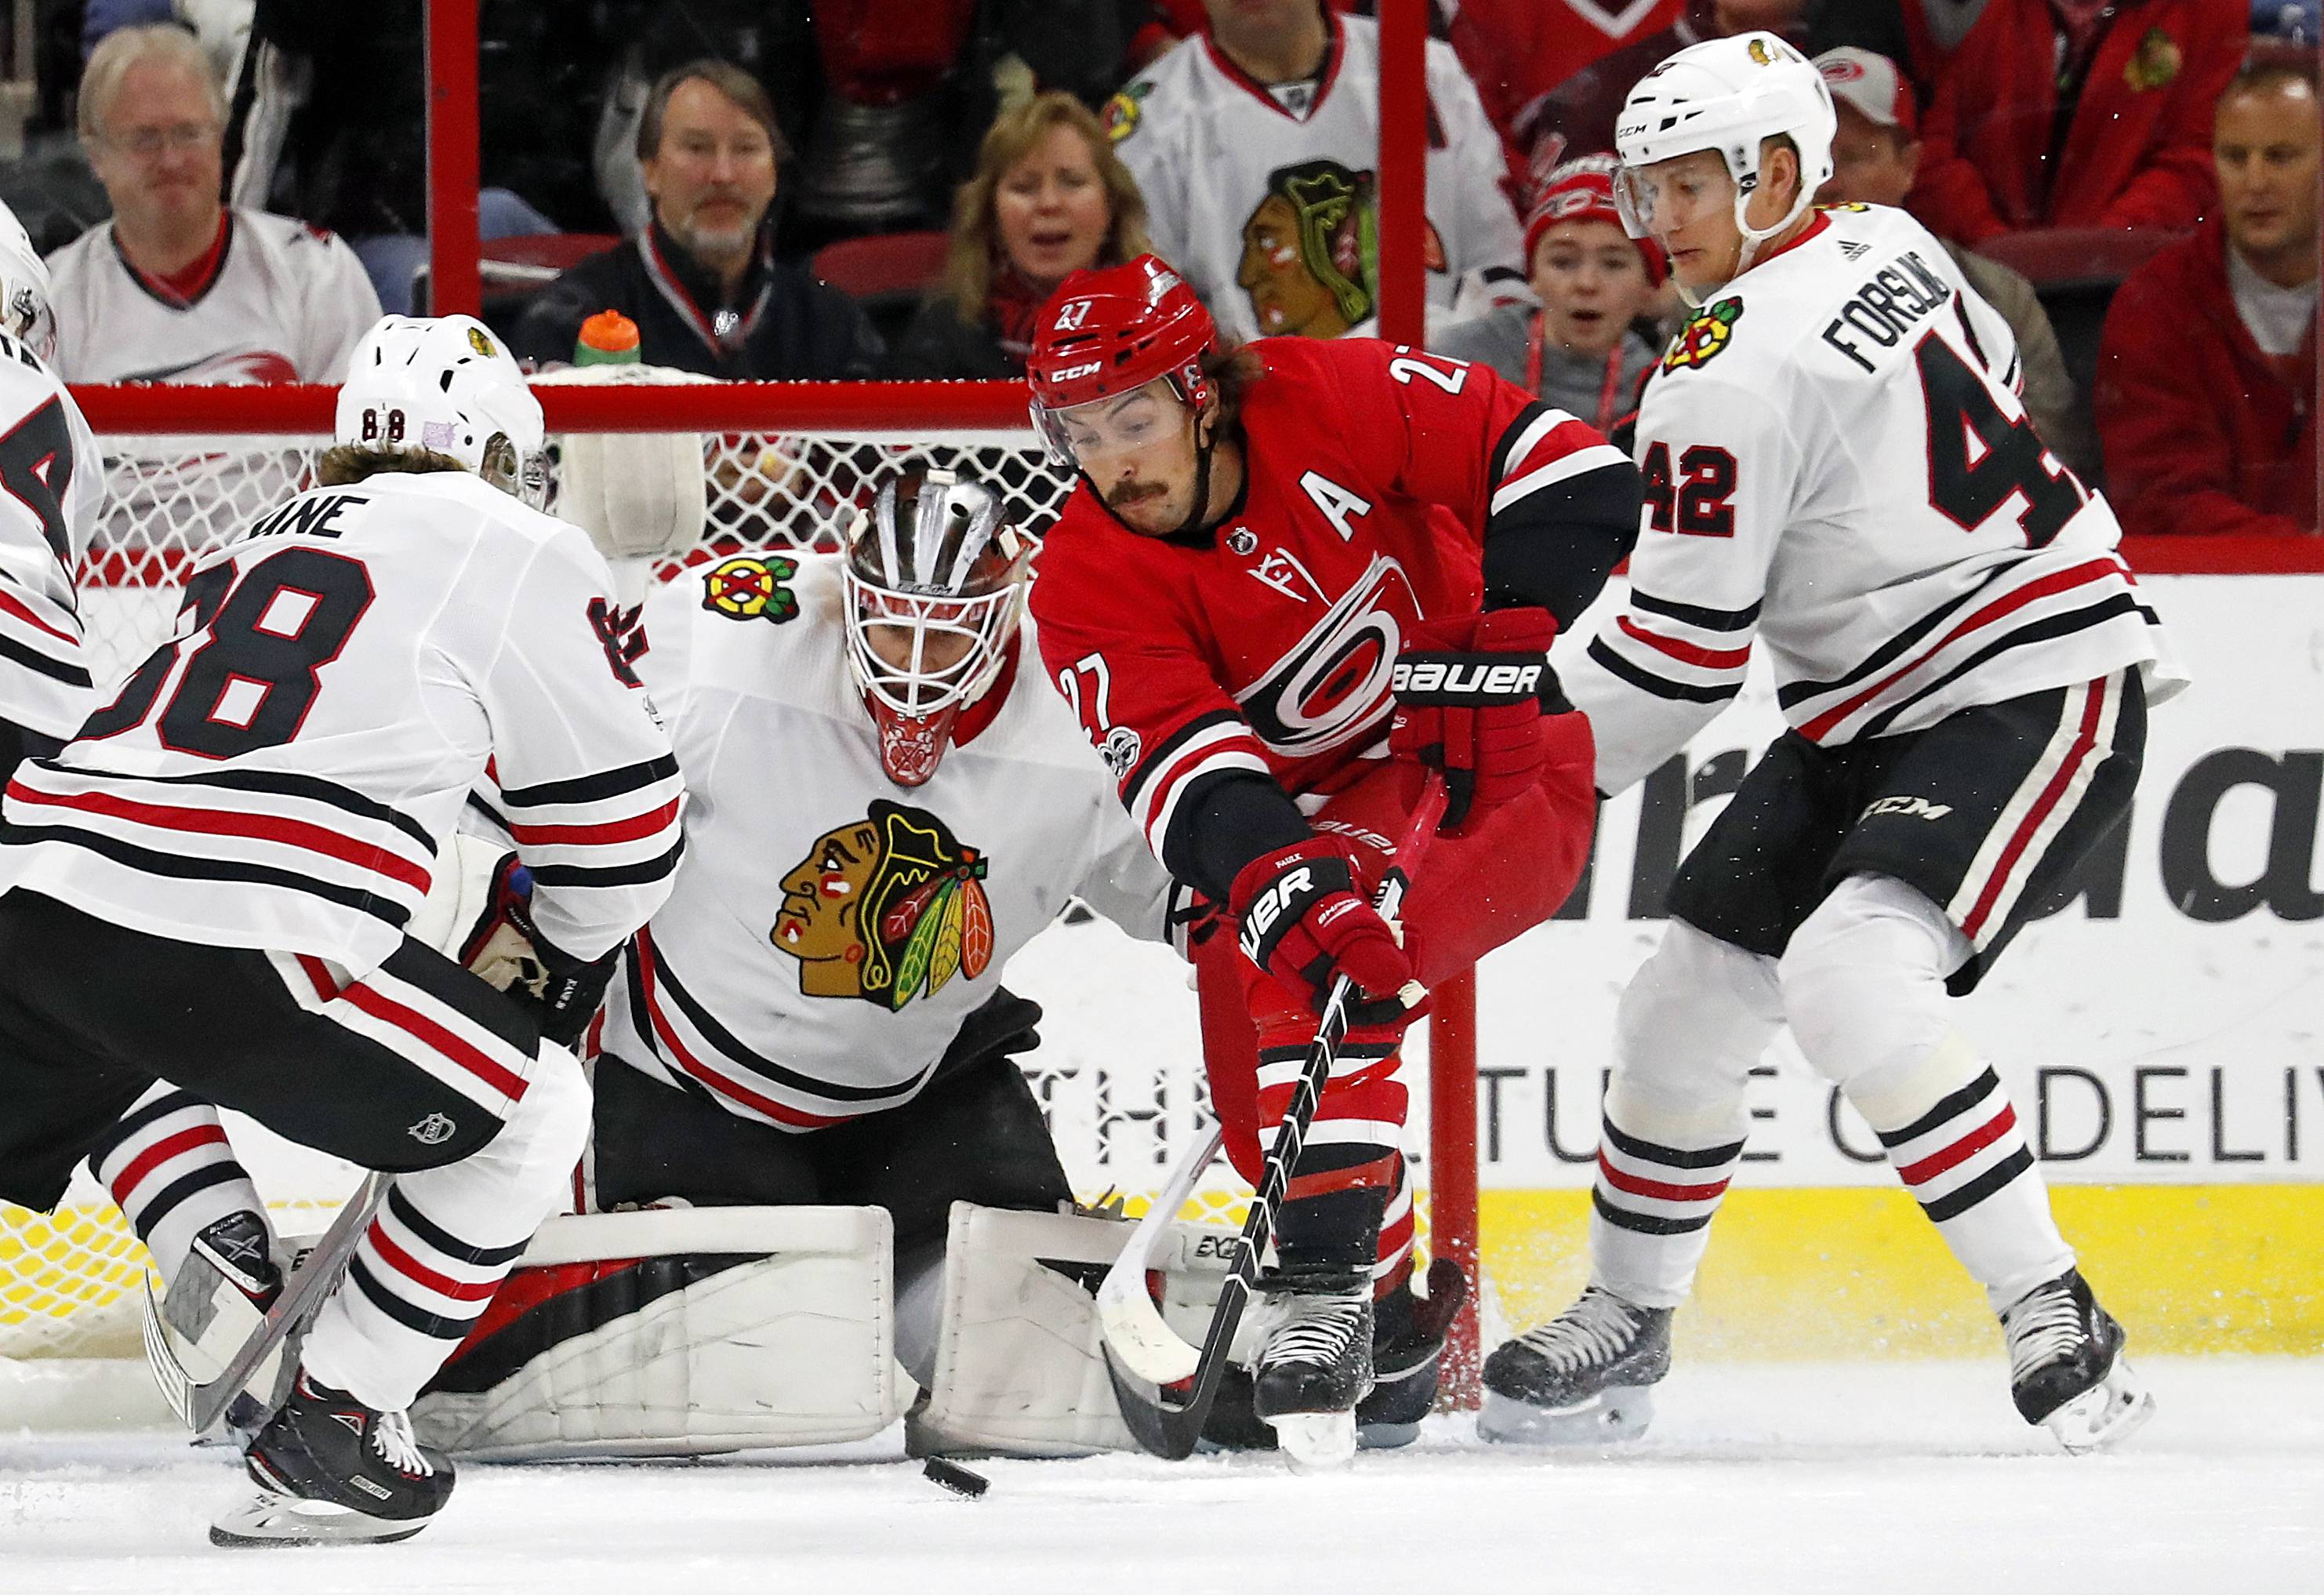 Carolina Hurricanes' Justin Faulk (27) works the puck in front of Chicago Blackhawks' goalie Anton Forsberg (31) between Blackhawks' Patrick Kane (88) and Gustav Forsling (42) during the first period of an NHL hockey game, Saturday, Nov. 11, 2017, in Raleigh, N.C. (AP Photo/Karl B DeBlaker)